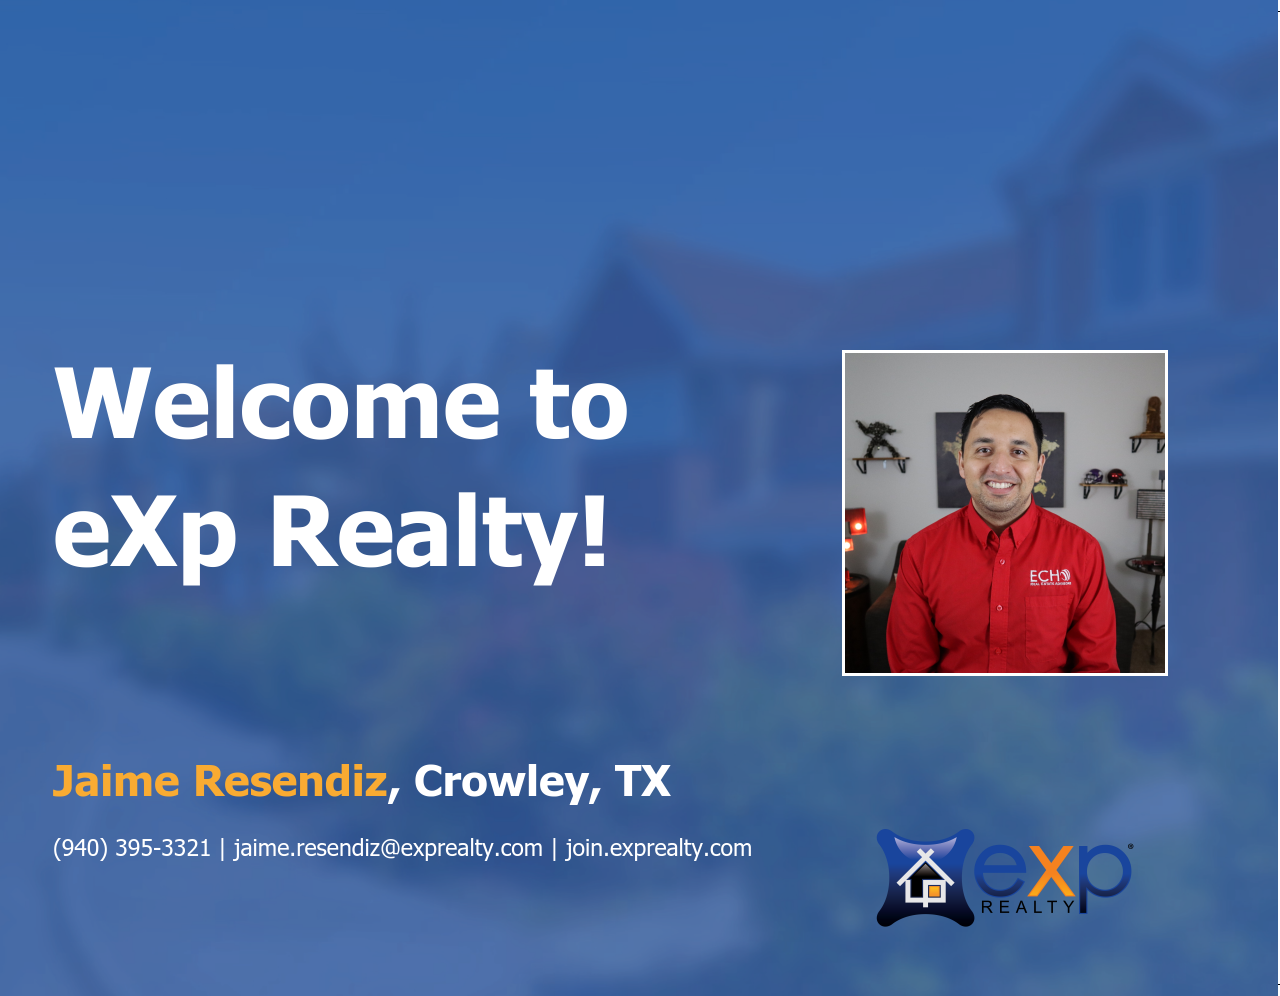 Welcome to eXp Realty Jaime Resendiz!